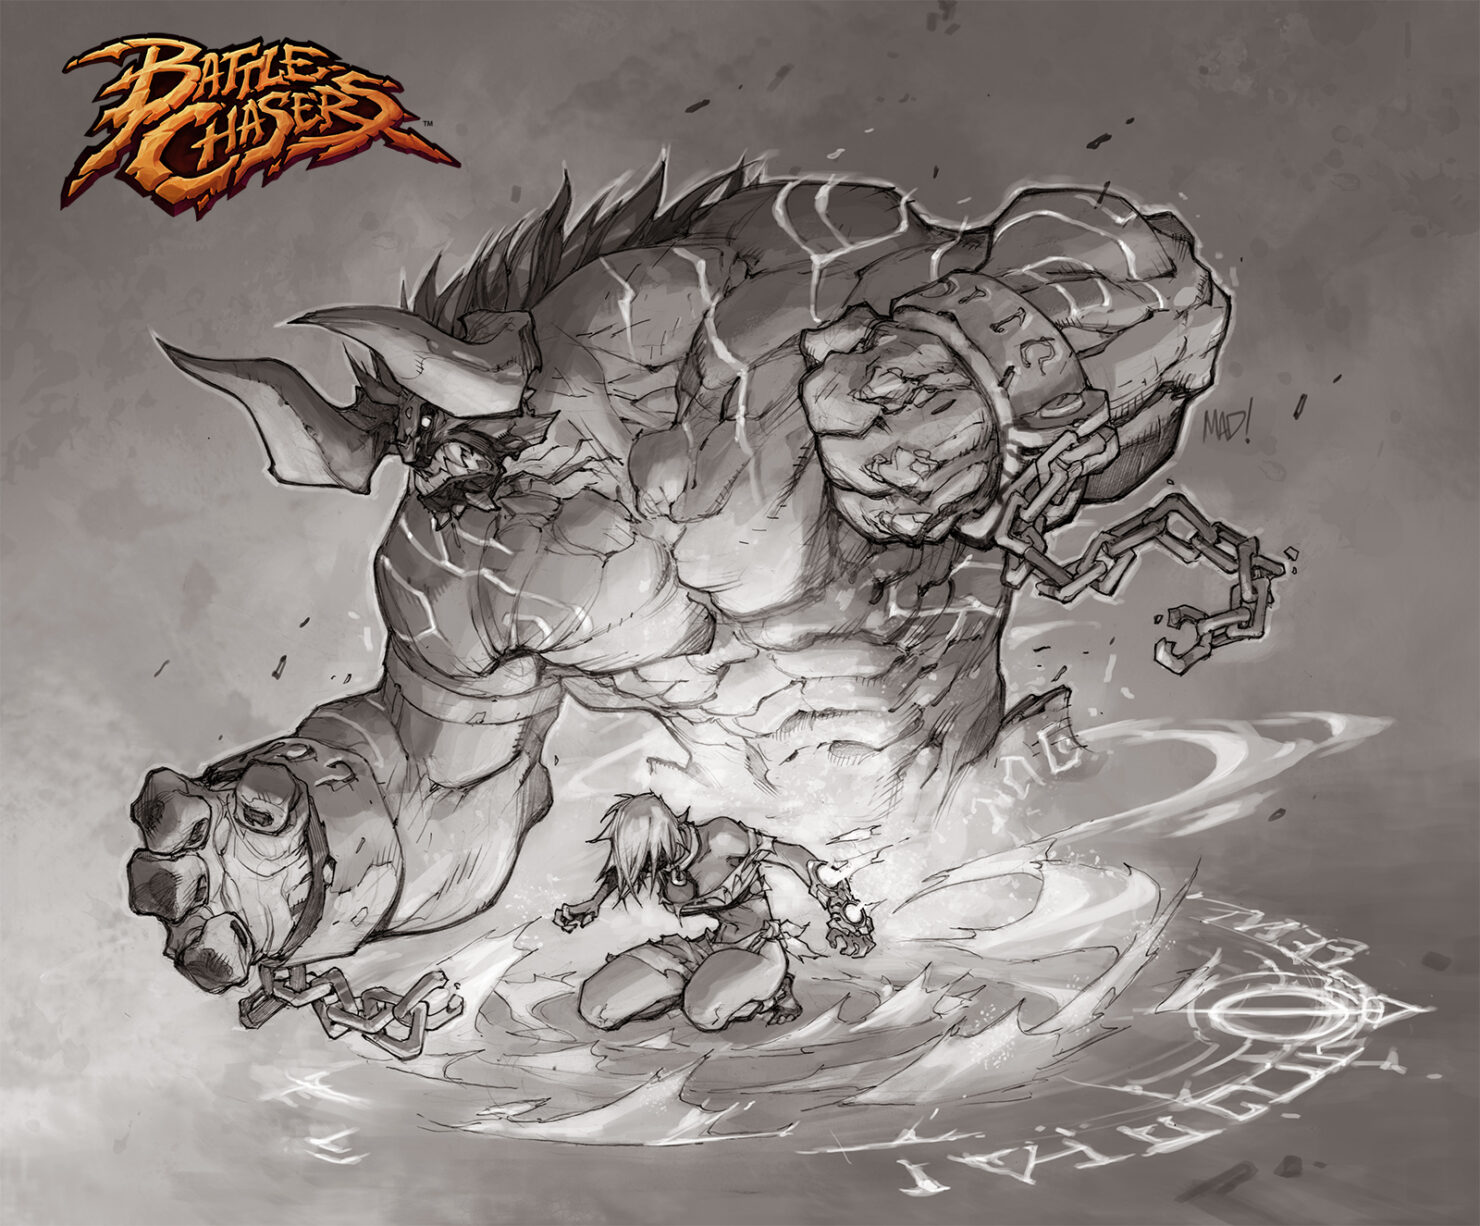 battle-chasers-1